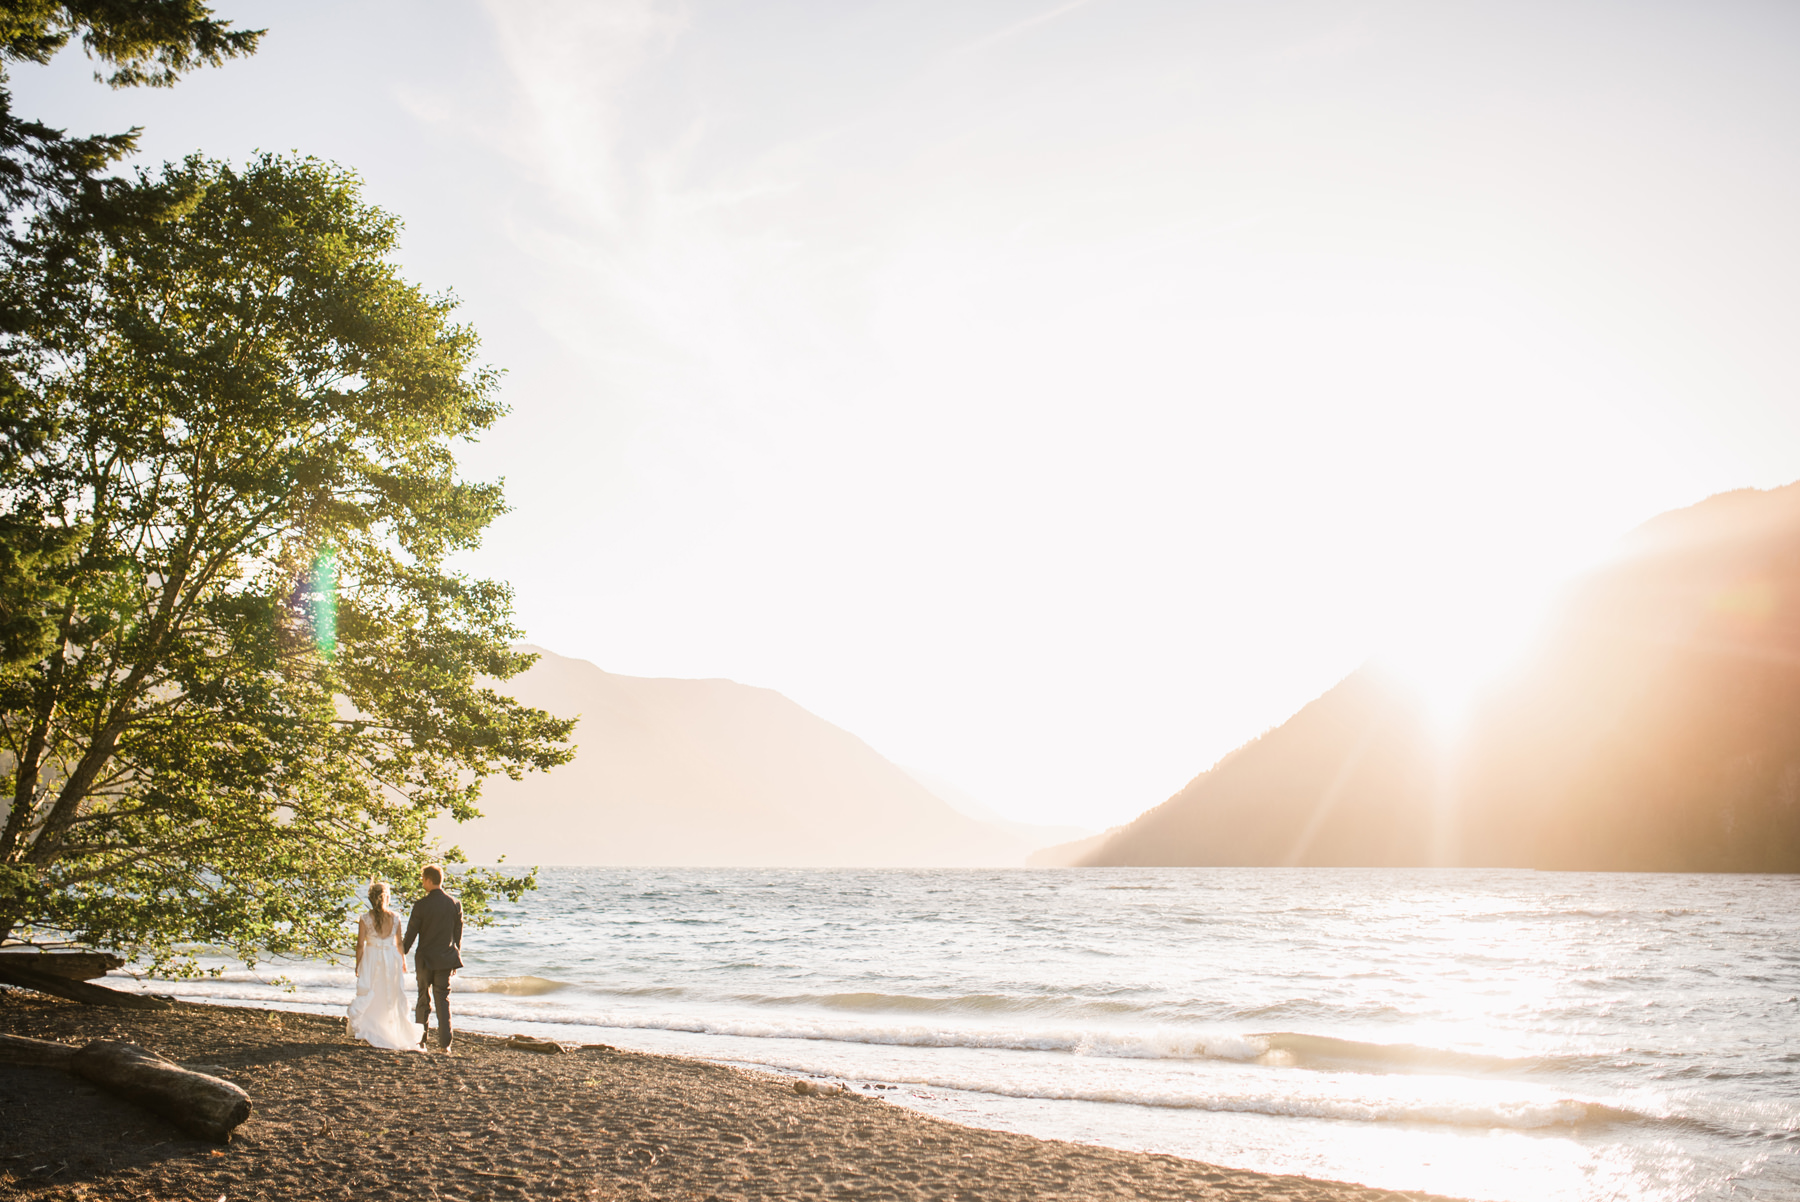 172-fine-art-film-wedding-portraits-at-nature-bride-near-the-lake-crescent-lodge.jpg